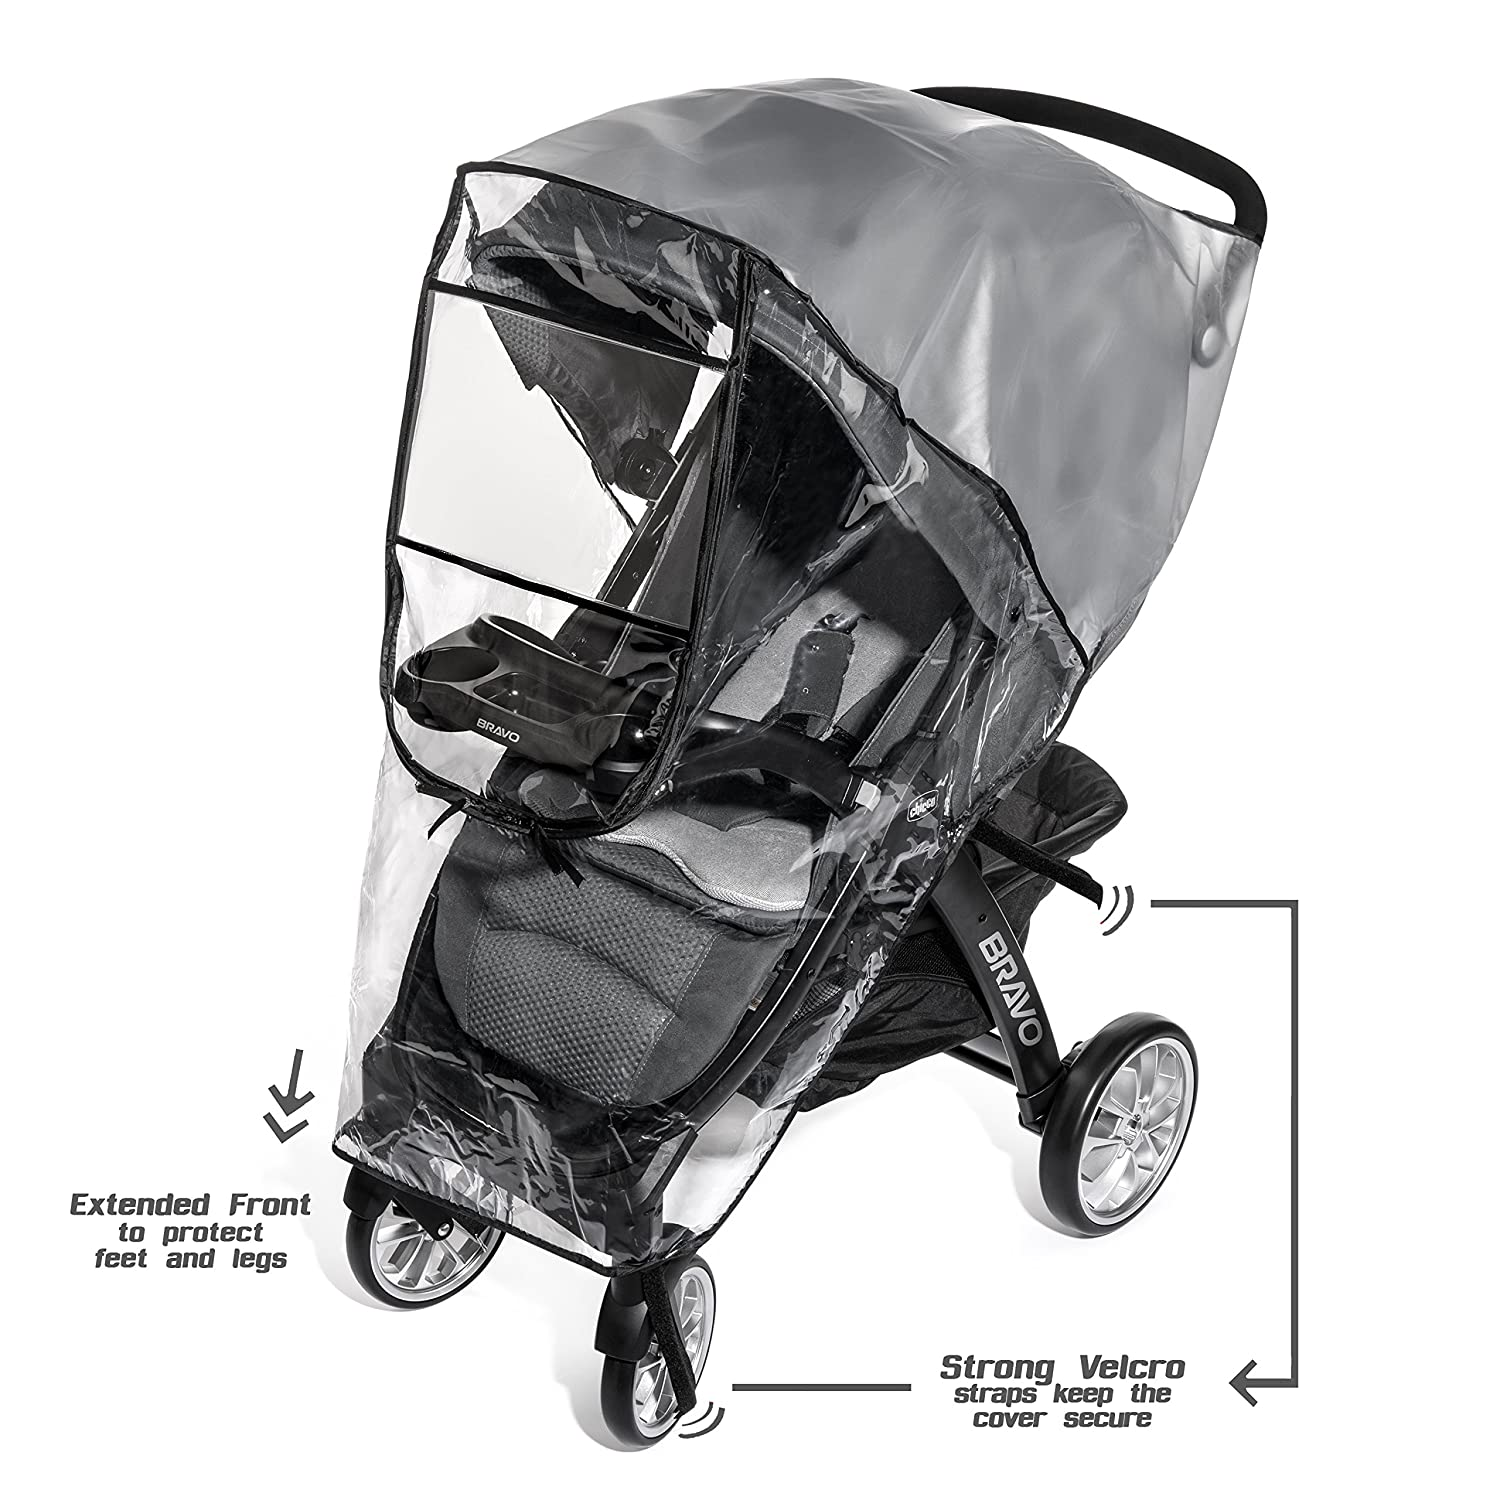 Amazon.com : Premium Stroller Cover Weather Shield, Easy In/Out ...